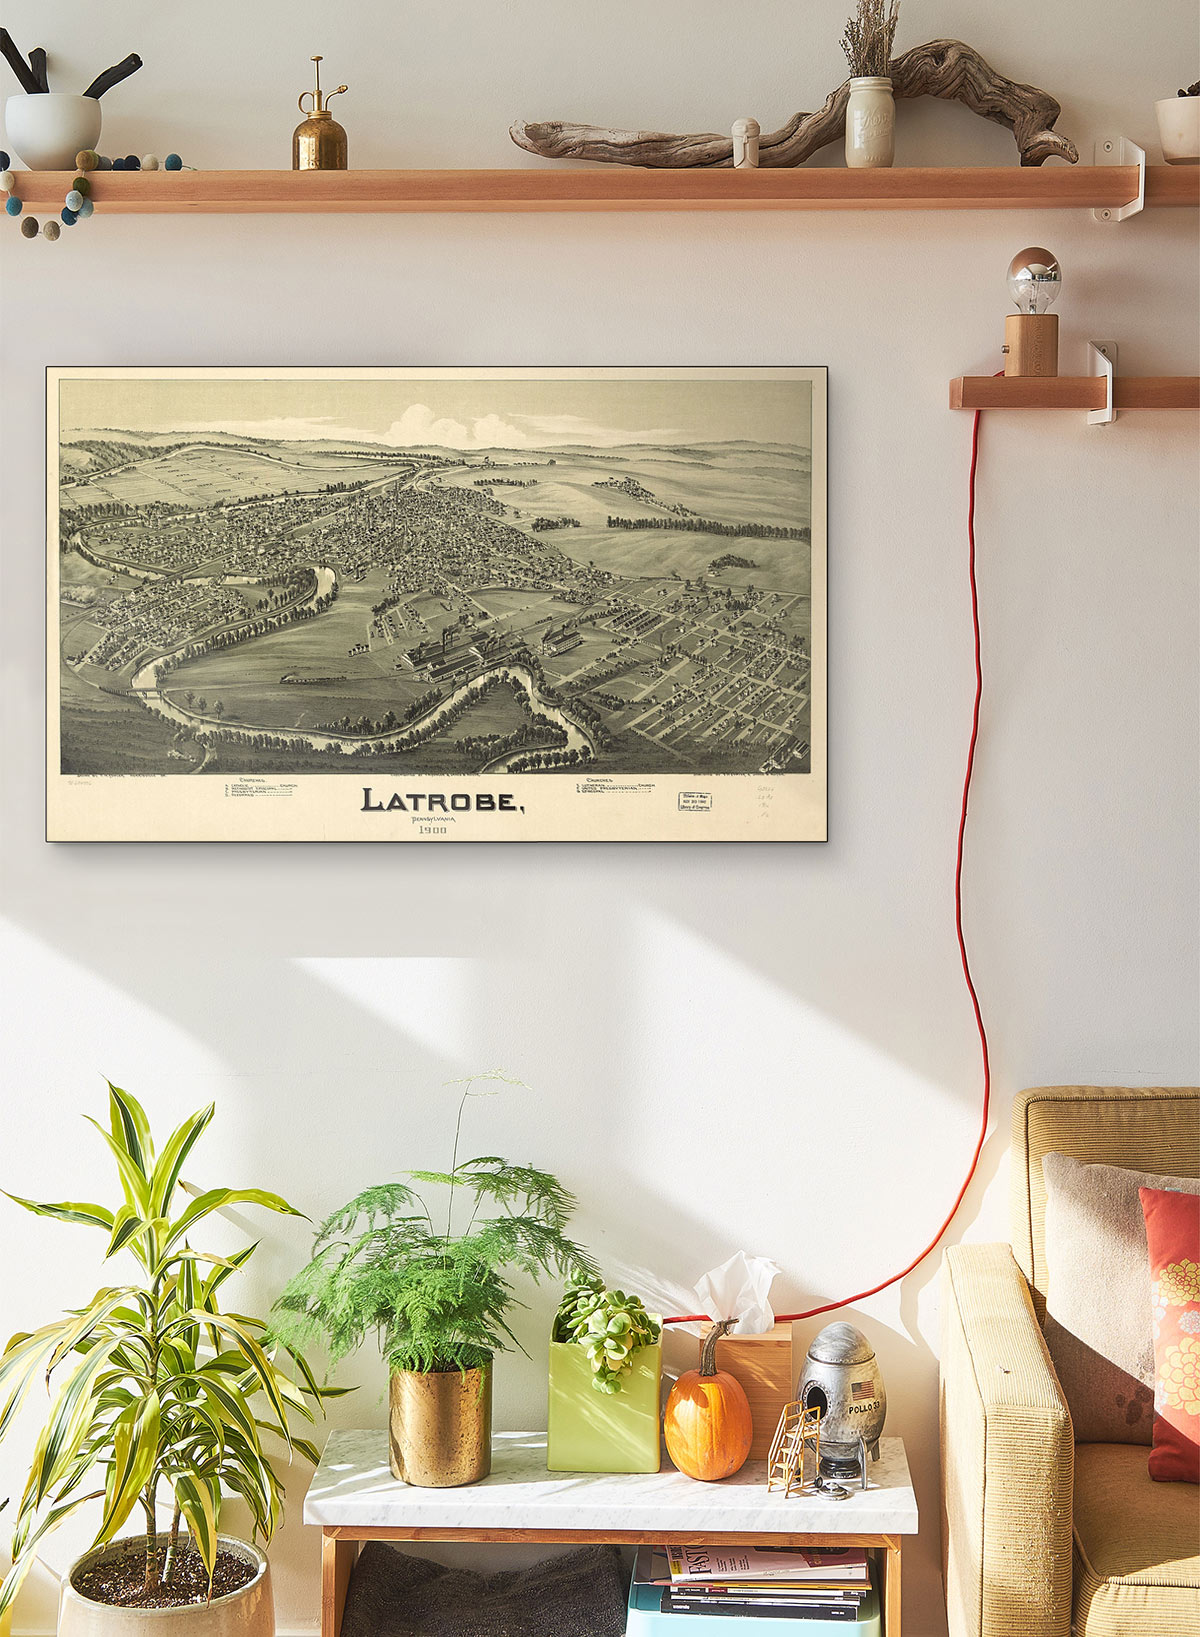 Latrobe Pennsylvania 1900 LARGE Vintage Map